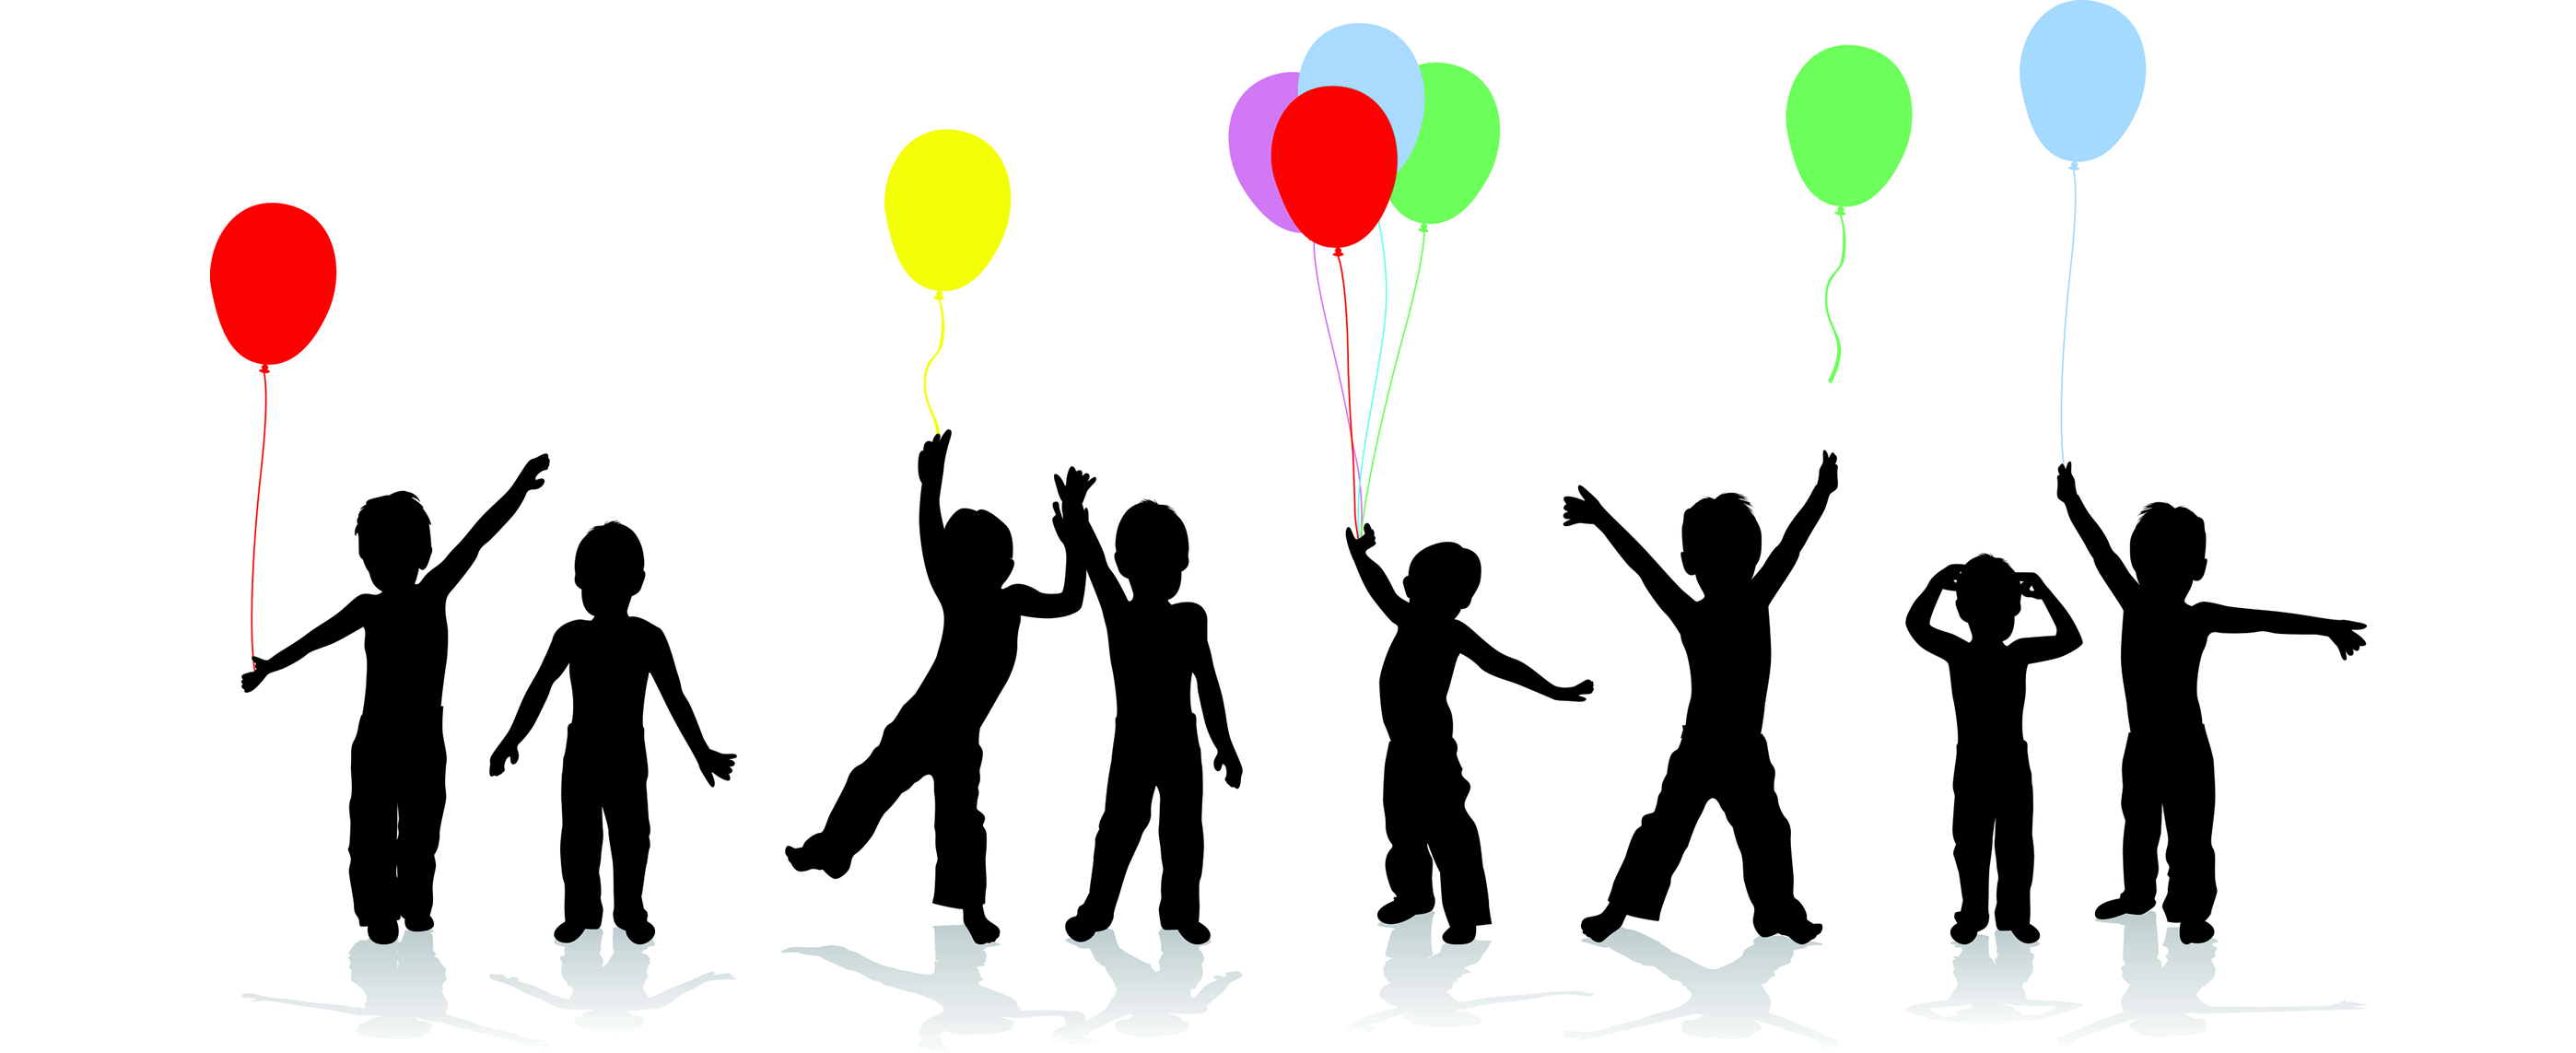 Children in a row with balloons